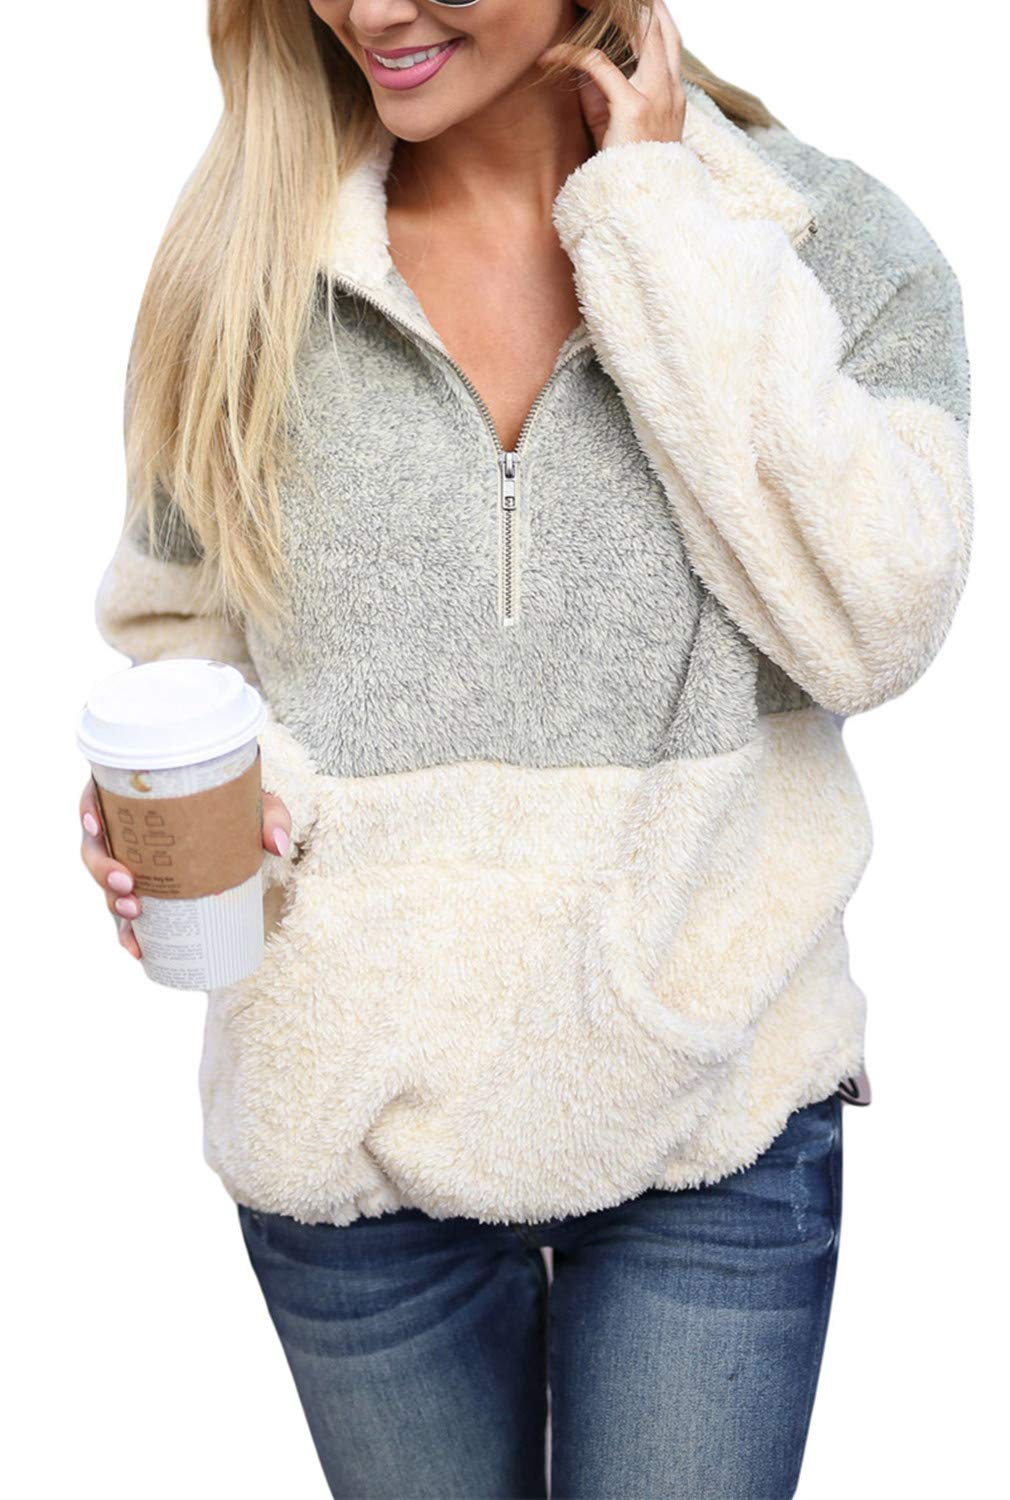 Dokotoo Womens Cozy Loose Casual Fuzzy Winter Sweater Soft Oversize Fluffy Fleece Color Block Sweatshirt Pullover Pockets Outwear Coat Light Grey Small